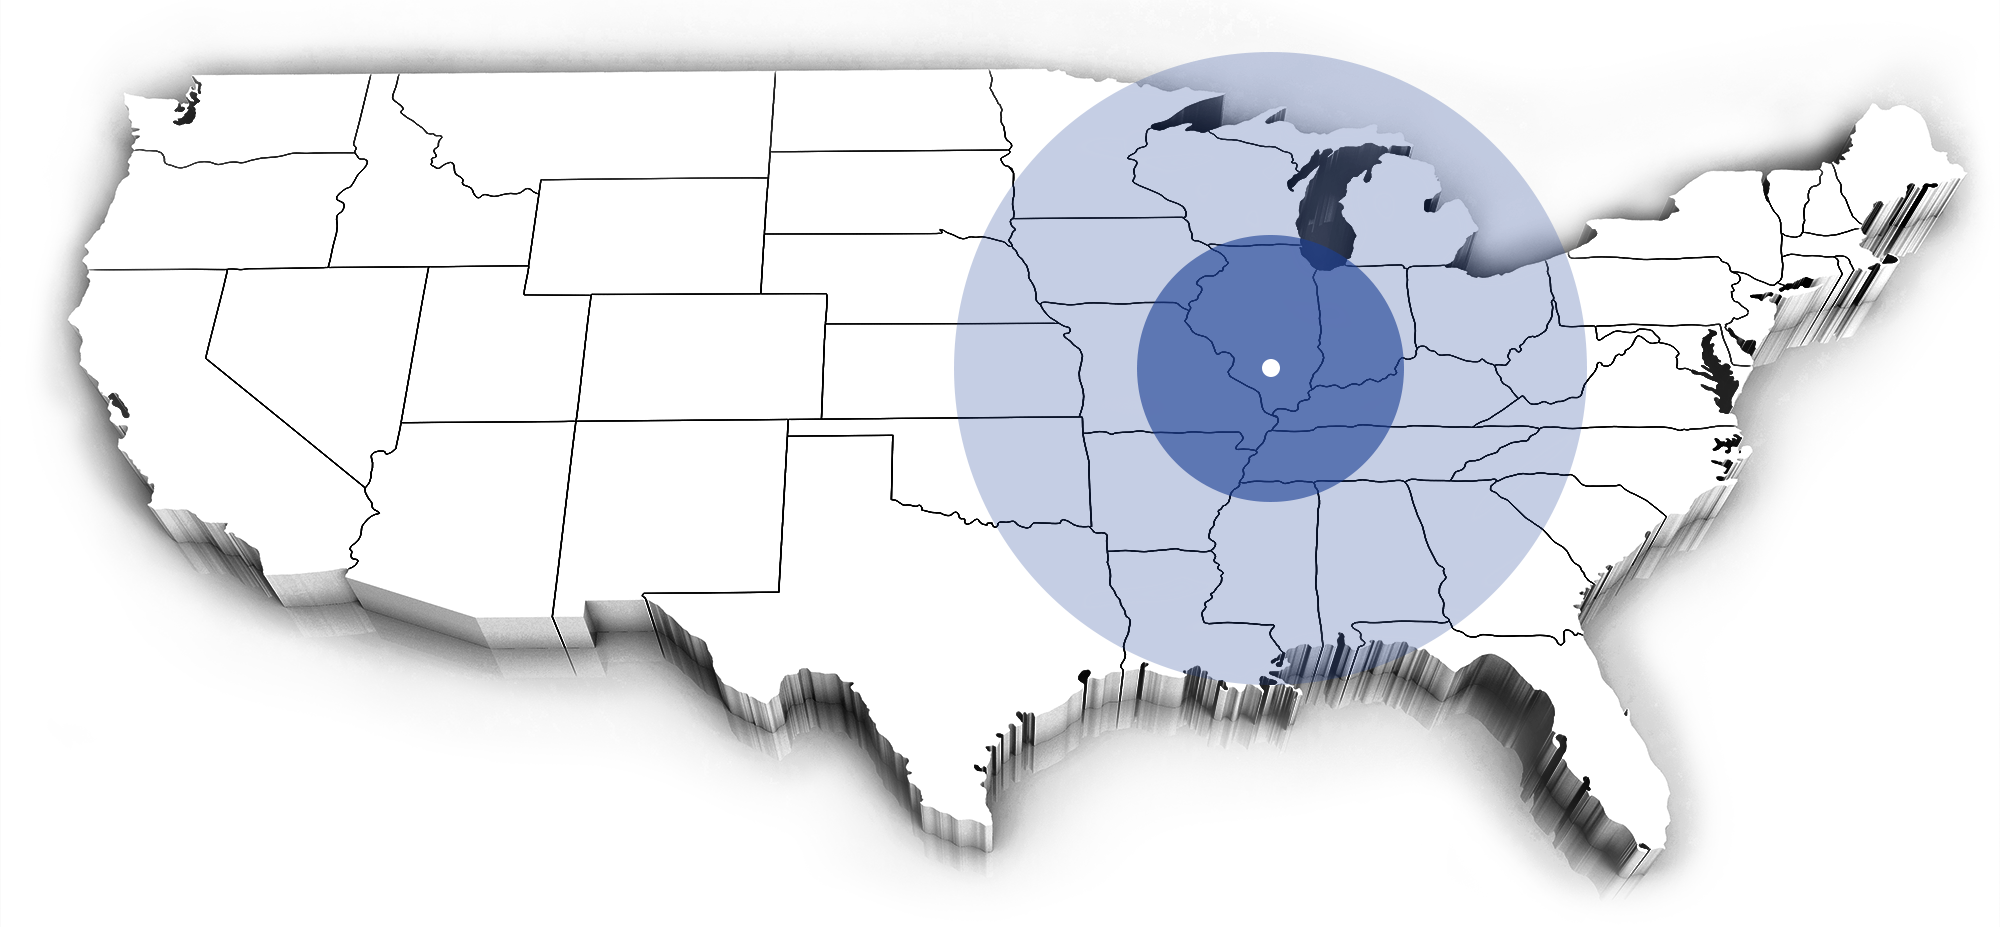 Extruded view of the United States Illustrating the Geographical Reach of Shores Builders